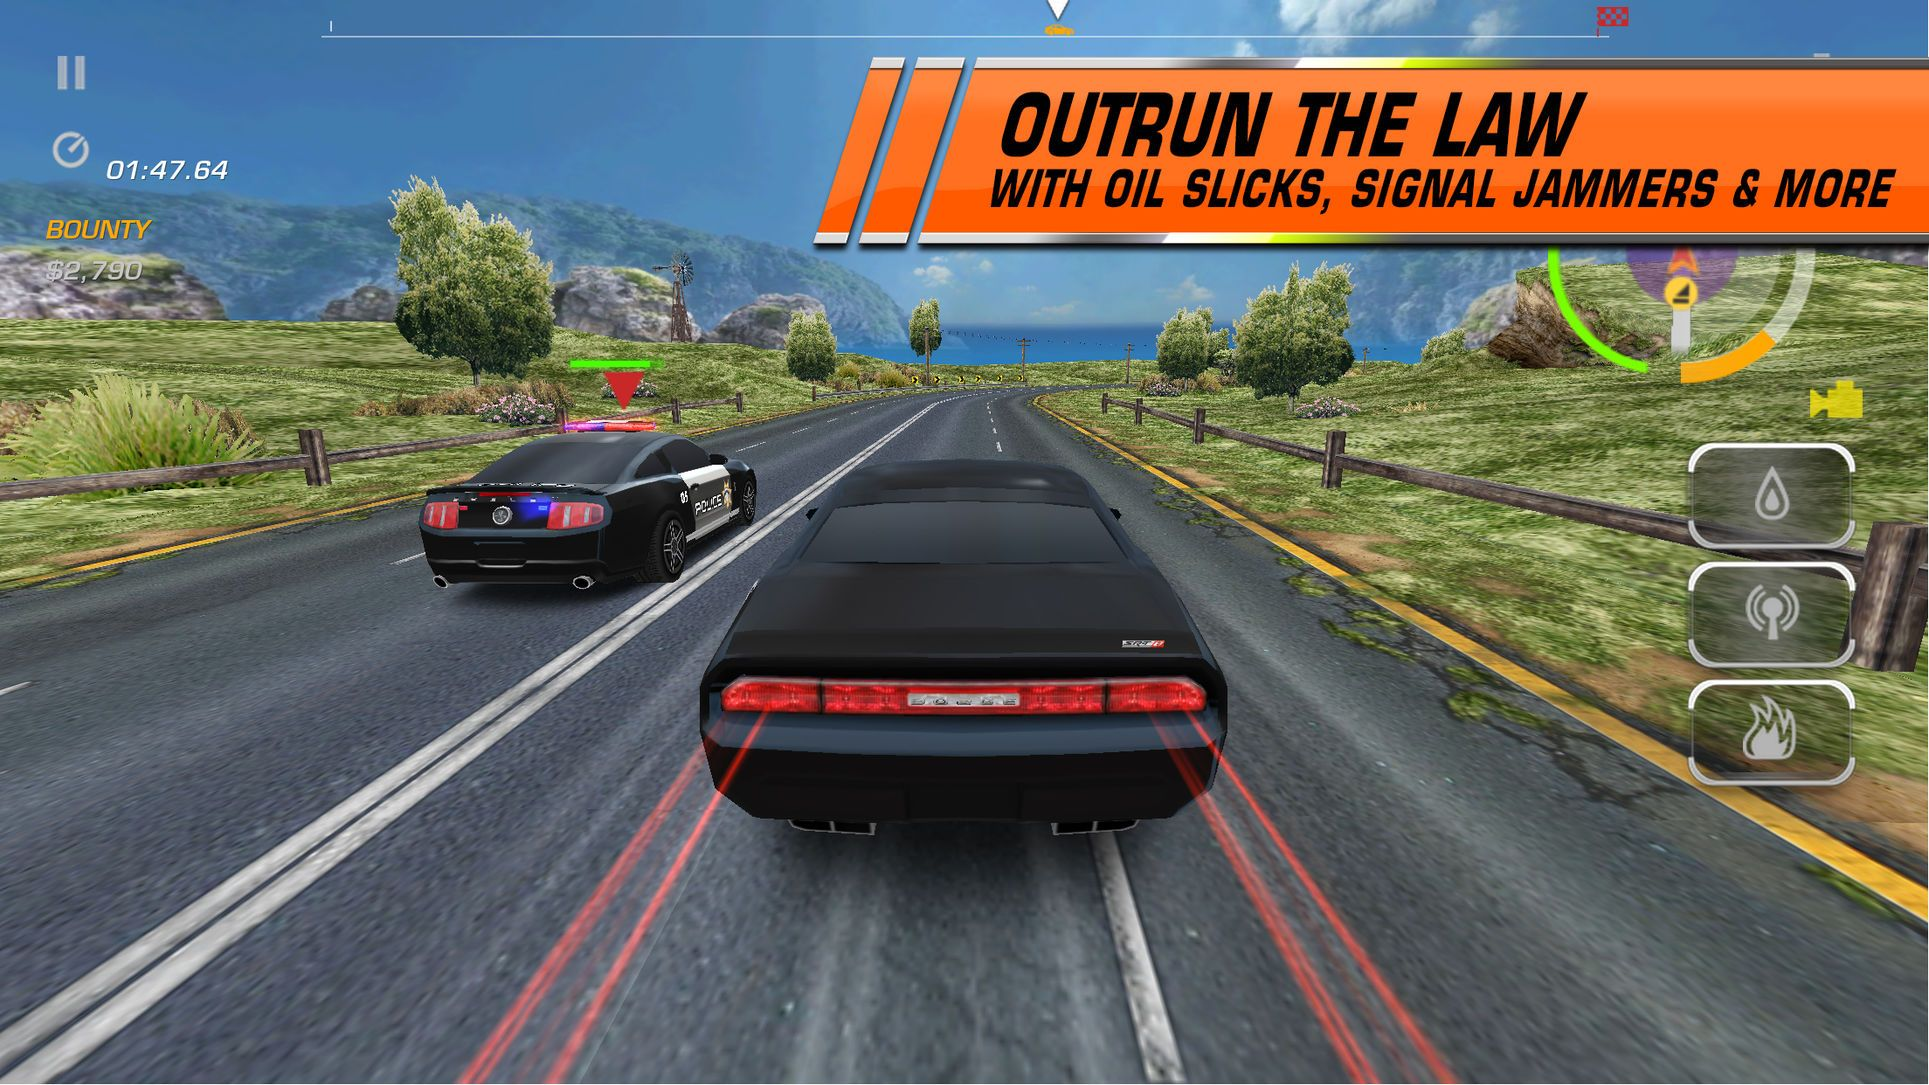 Need For Speeda 20hot Pursuit Racing Games Action Ios Signal Jammers Oil Slick Hot